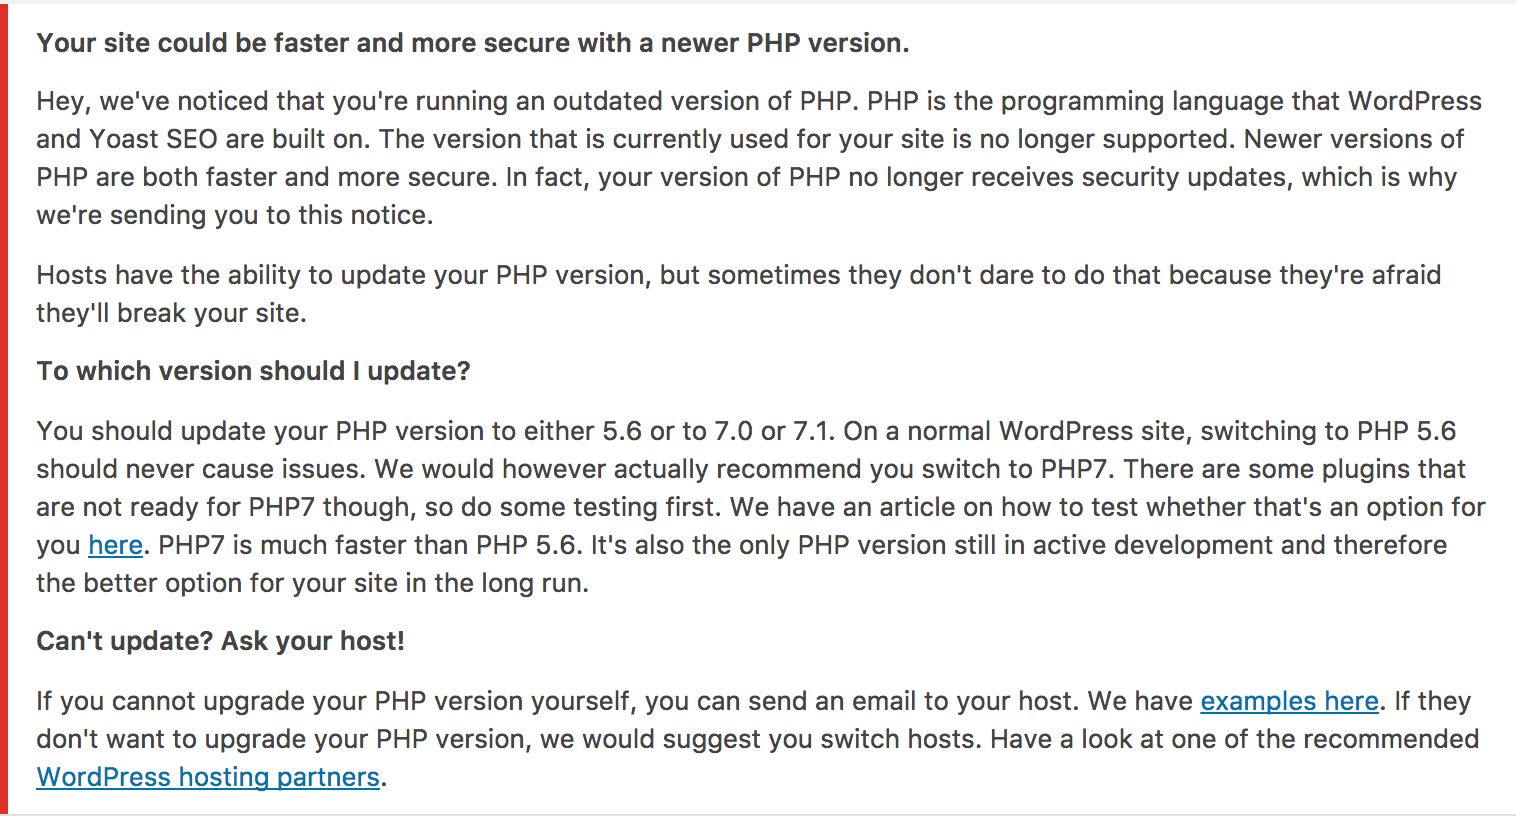 Yoast SEO's PHP Upgrade Nag is Producing a Significant